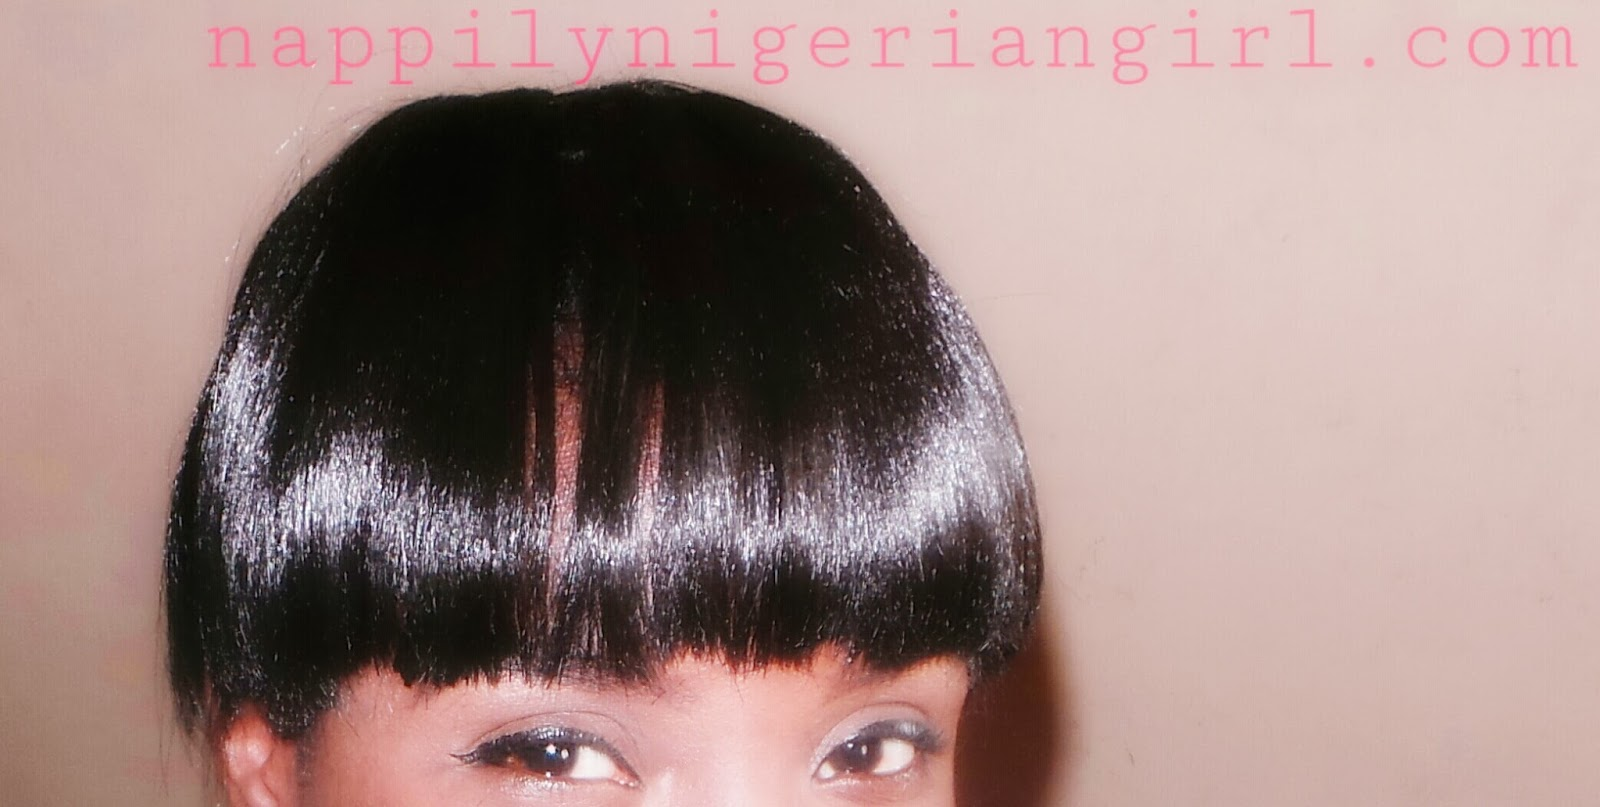 Crochet Hair With Bangs : Straight Crochet Braids With Bangs Nappilynigeriangirl: using ...